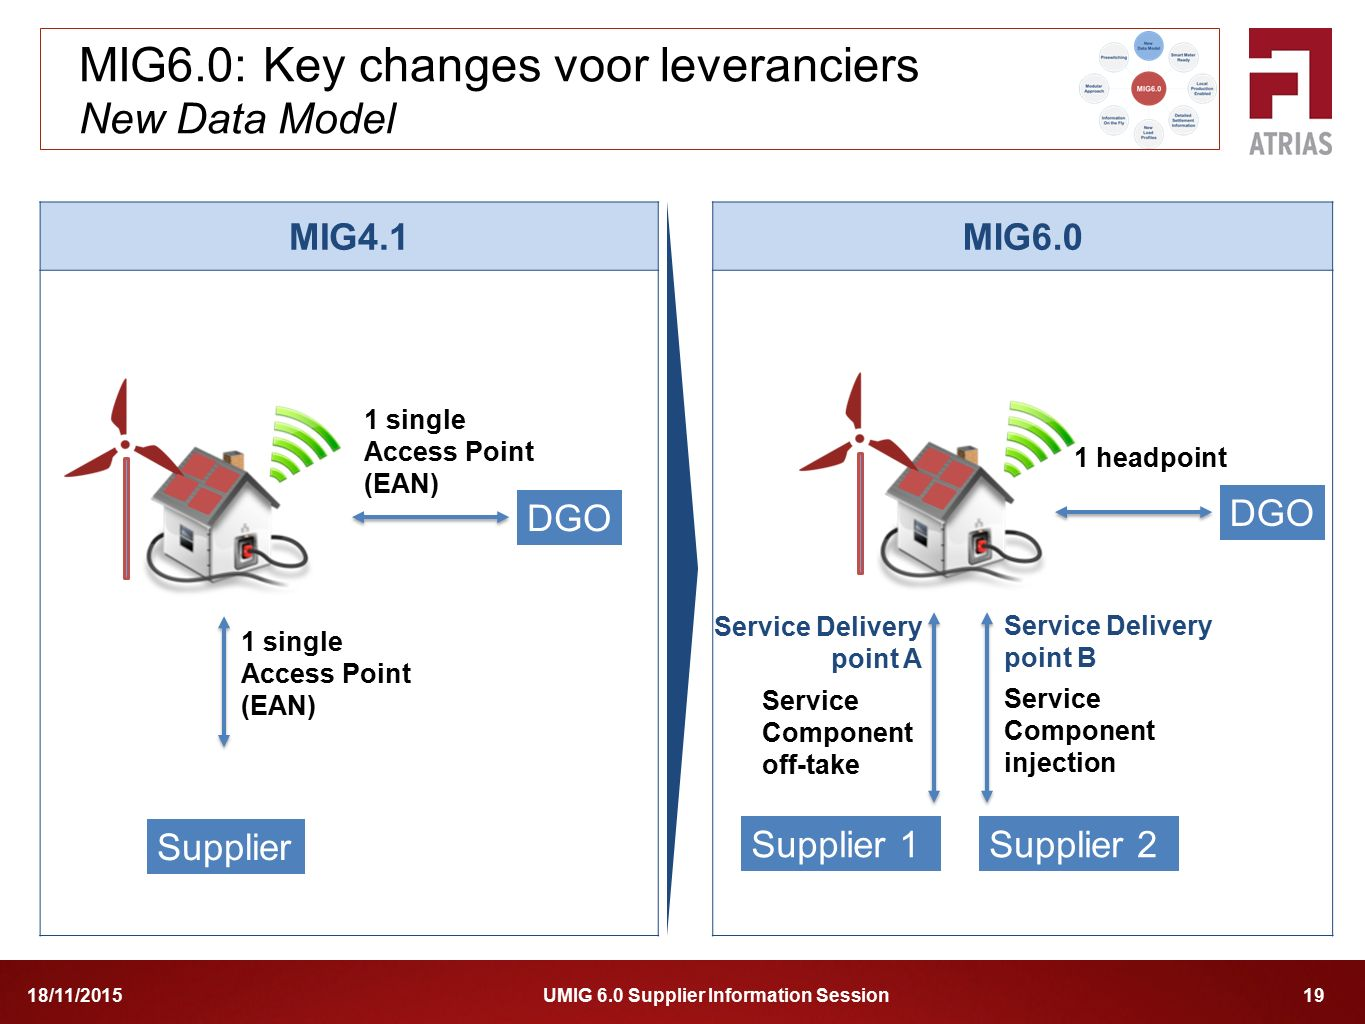 UMIG 6.0 Supplier Information Session 1918/11/2015 MIG4.1 MIG6.0 MIG6.0: Key changes voor leveranciers New Data Model 1 single Access Point (EAN) 1 single Access Point (EAN) Service Component injection Service Component off-take Service Delivery point A Supplier DGO 1 headpoint Supplier 1 DGO Supplier 2 Service Delivery point B